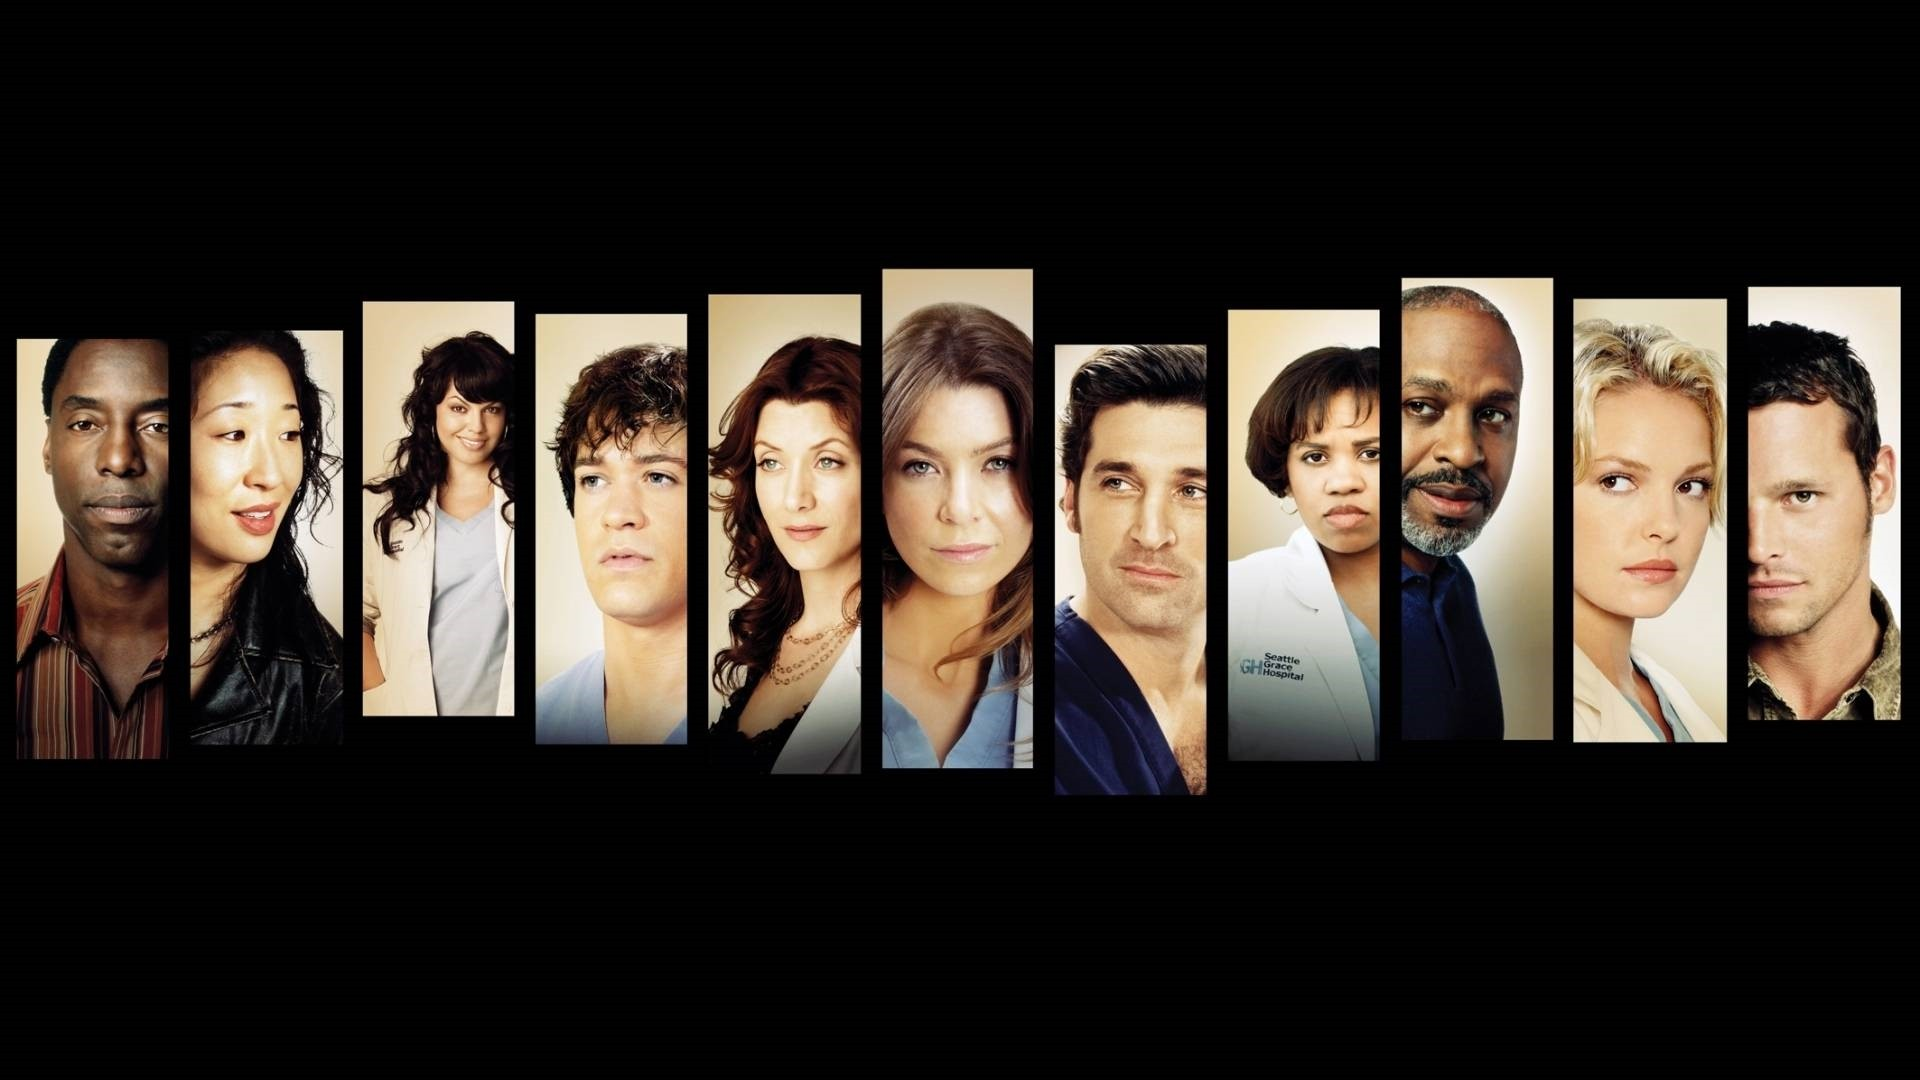 Grey's Anatomy Free Wallpaper and Background